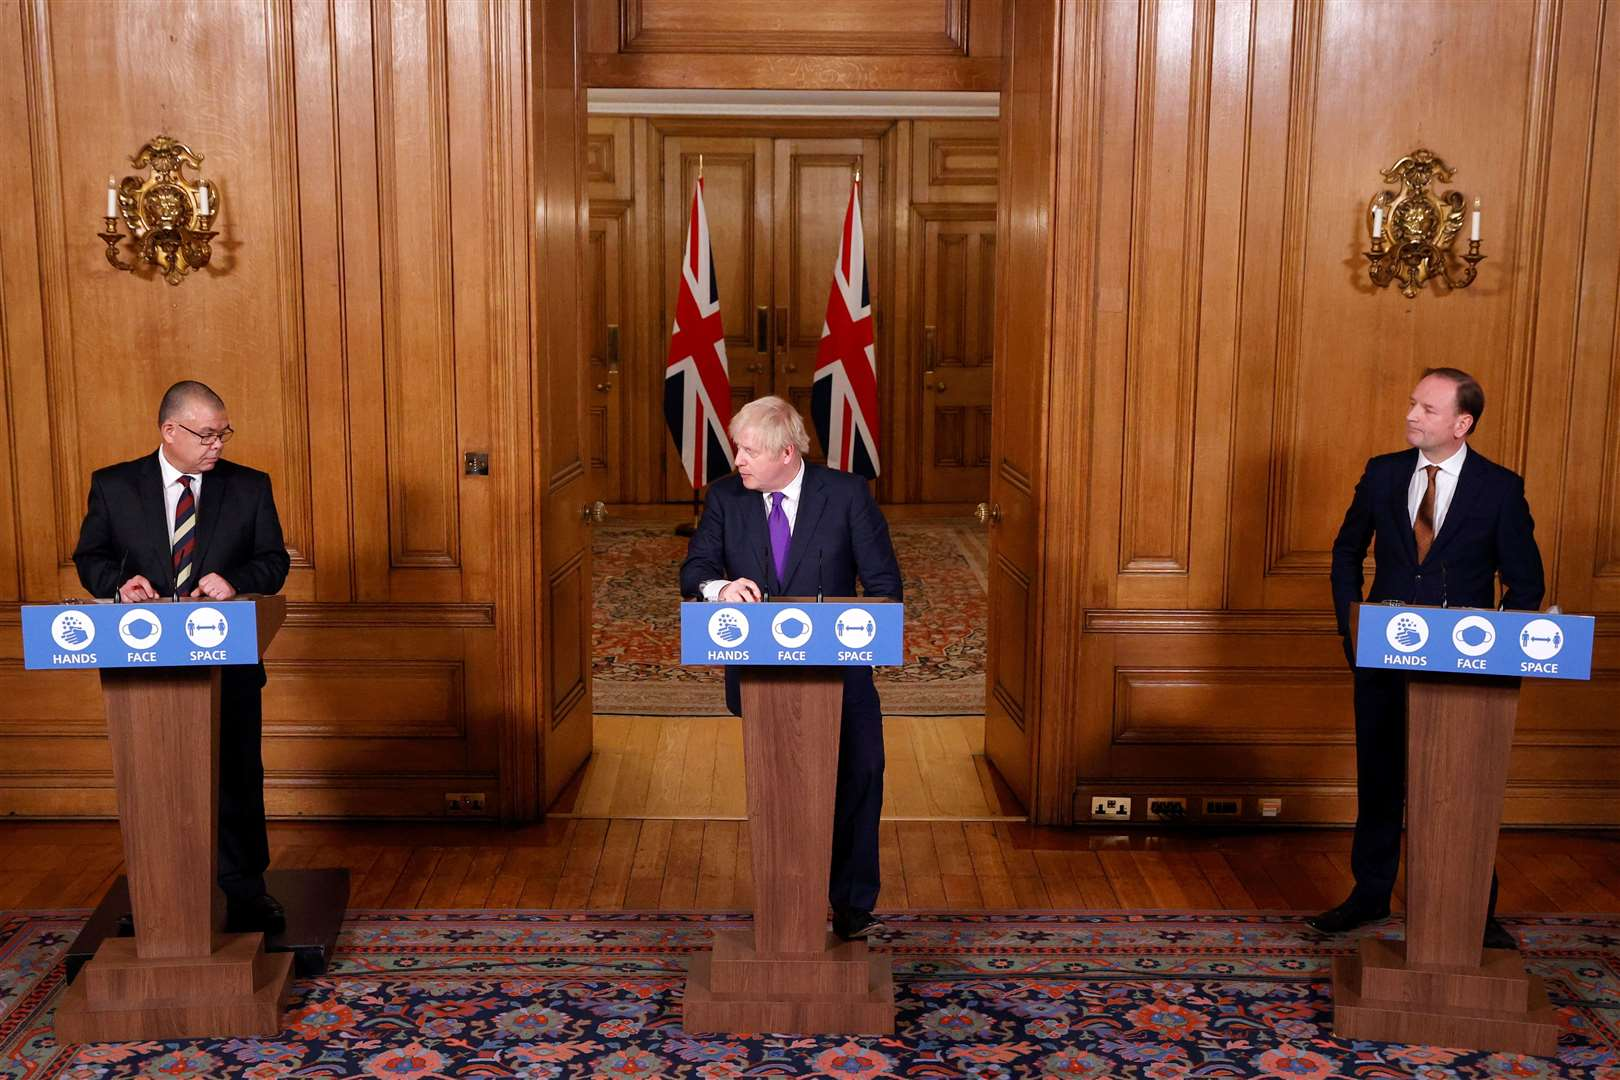 Professor Jonathan Van-Tam Prime Minister Boris Johnson and Sir Simon Stevens during a media briefing in Downing Street